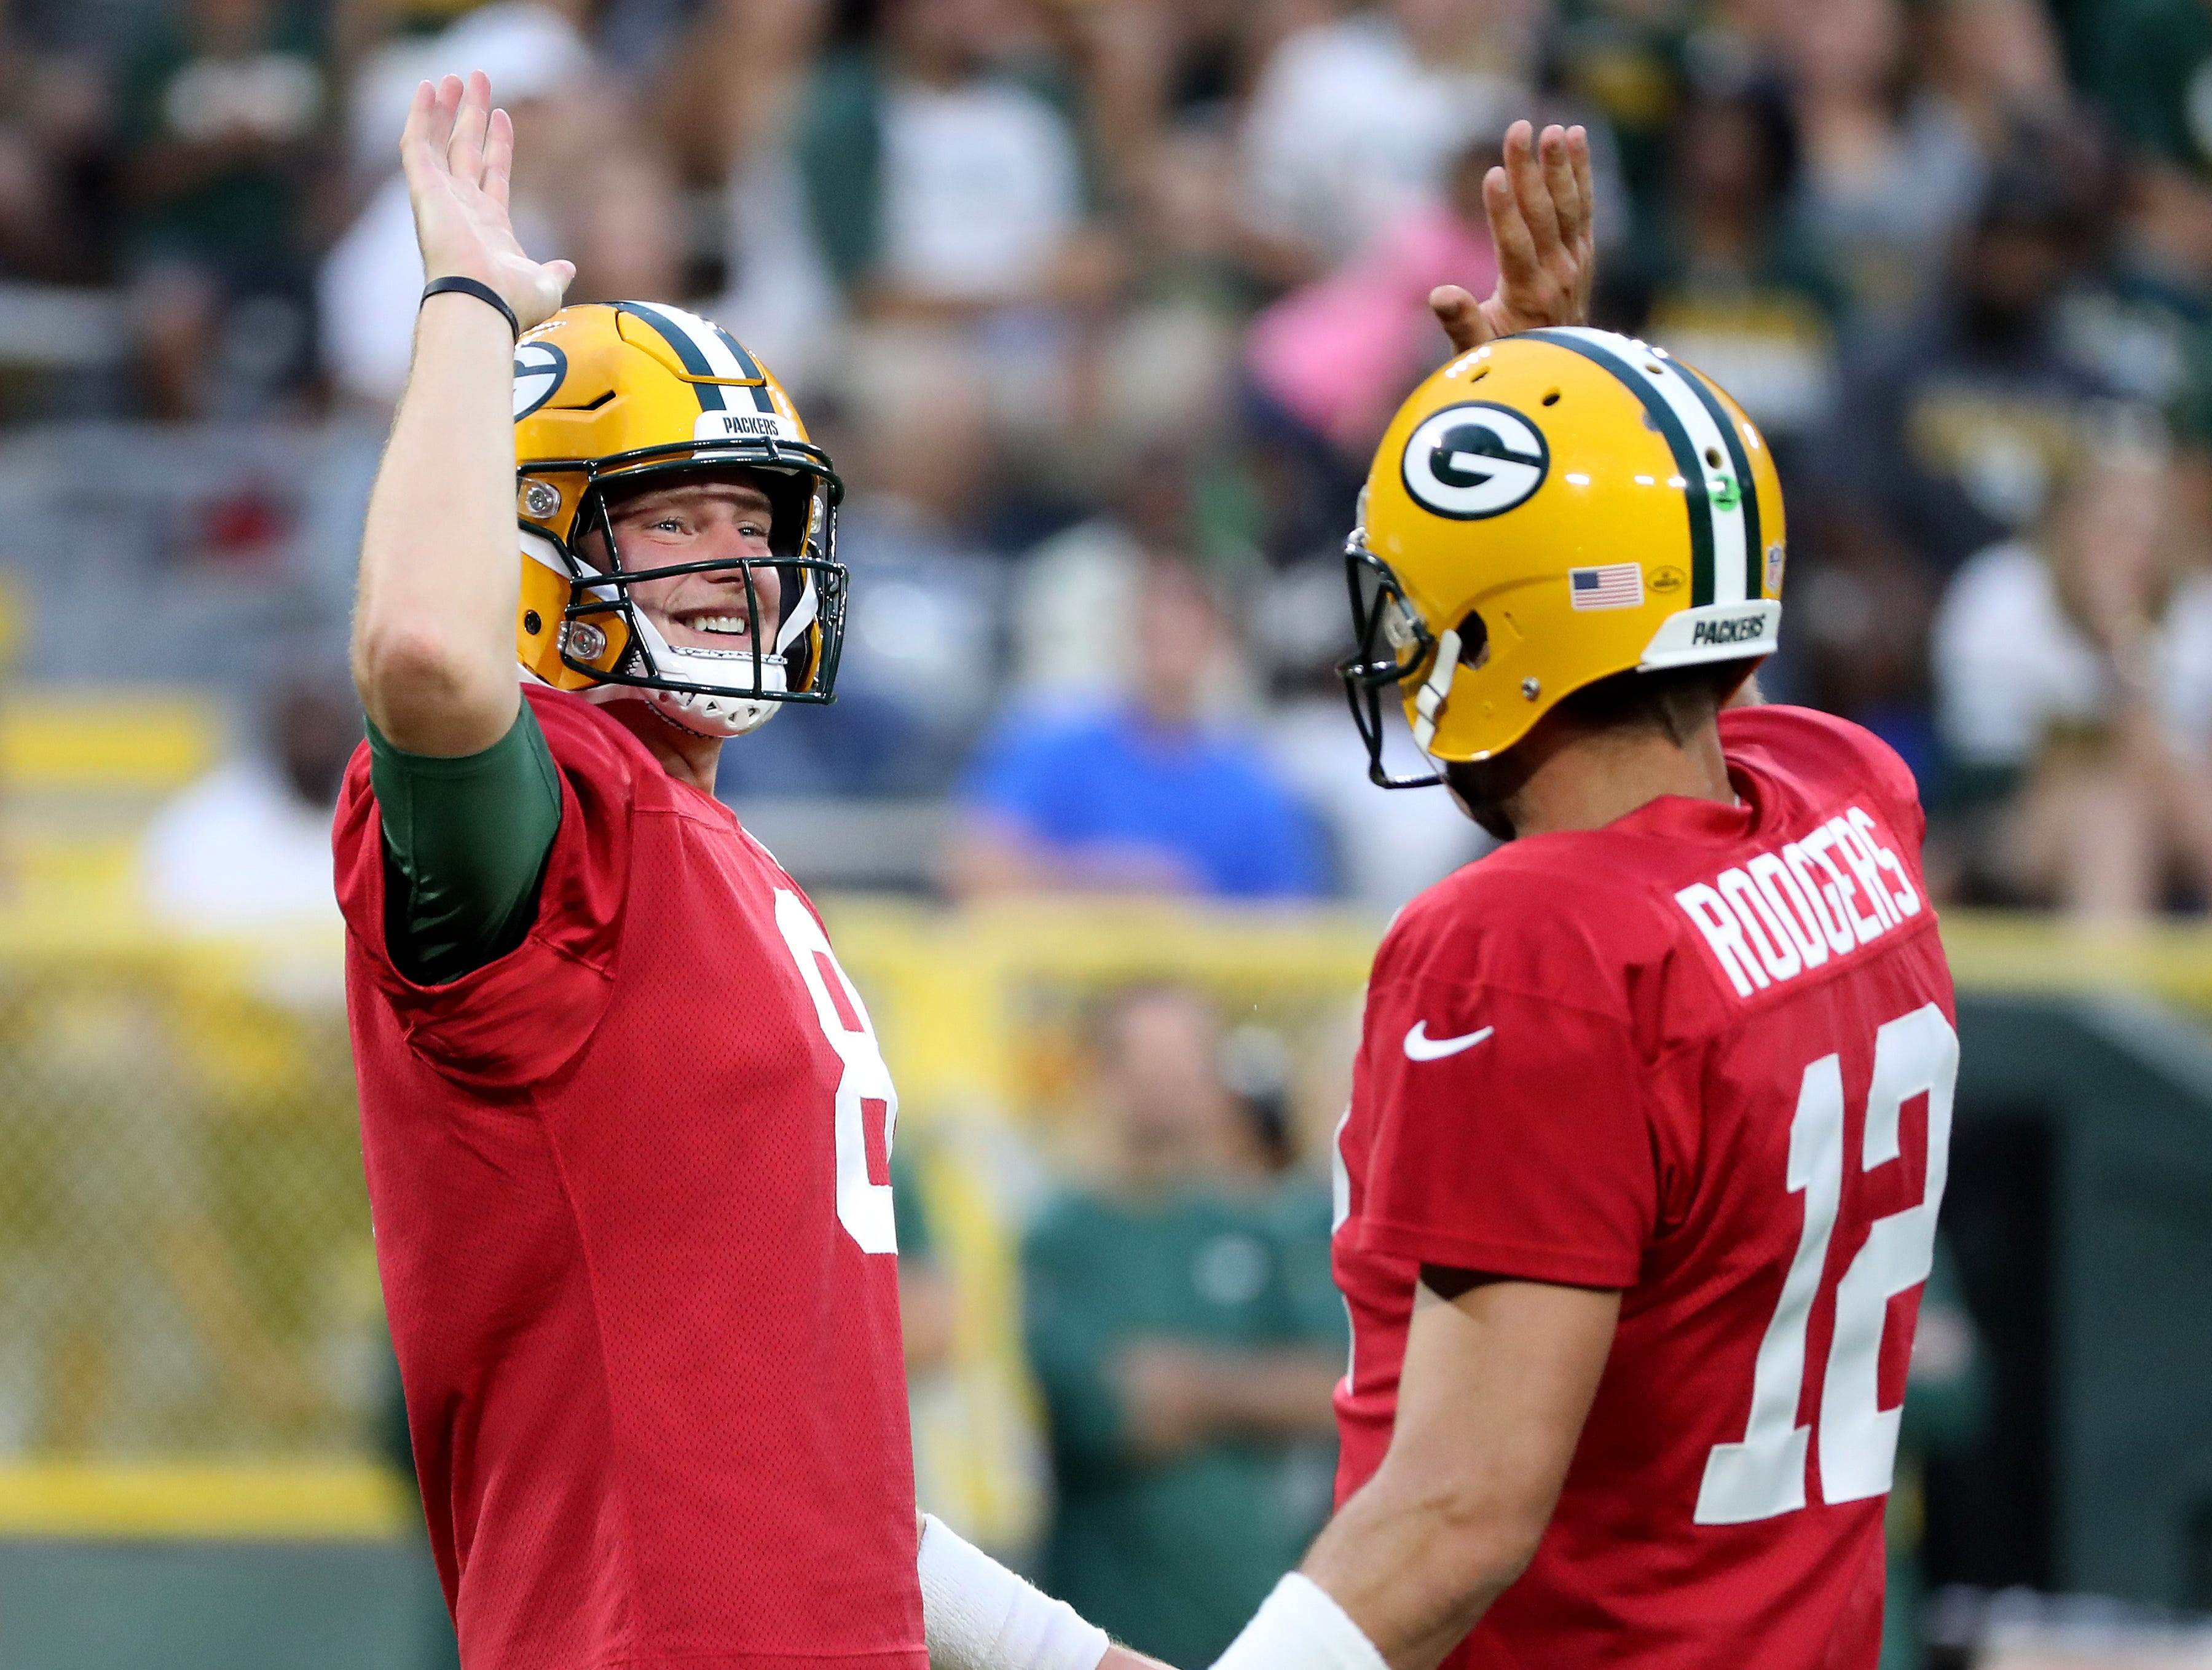 Green Bay Packers quarterback Tim Boyle (8) high fives with quarterback Aaron Rodgers (12) during Green Bay Packers Family Night  Saturday, August 4, 2018 at Lambeau Field in Green Bay, Wis.,